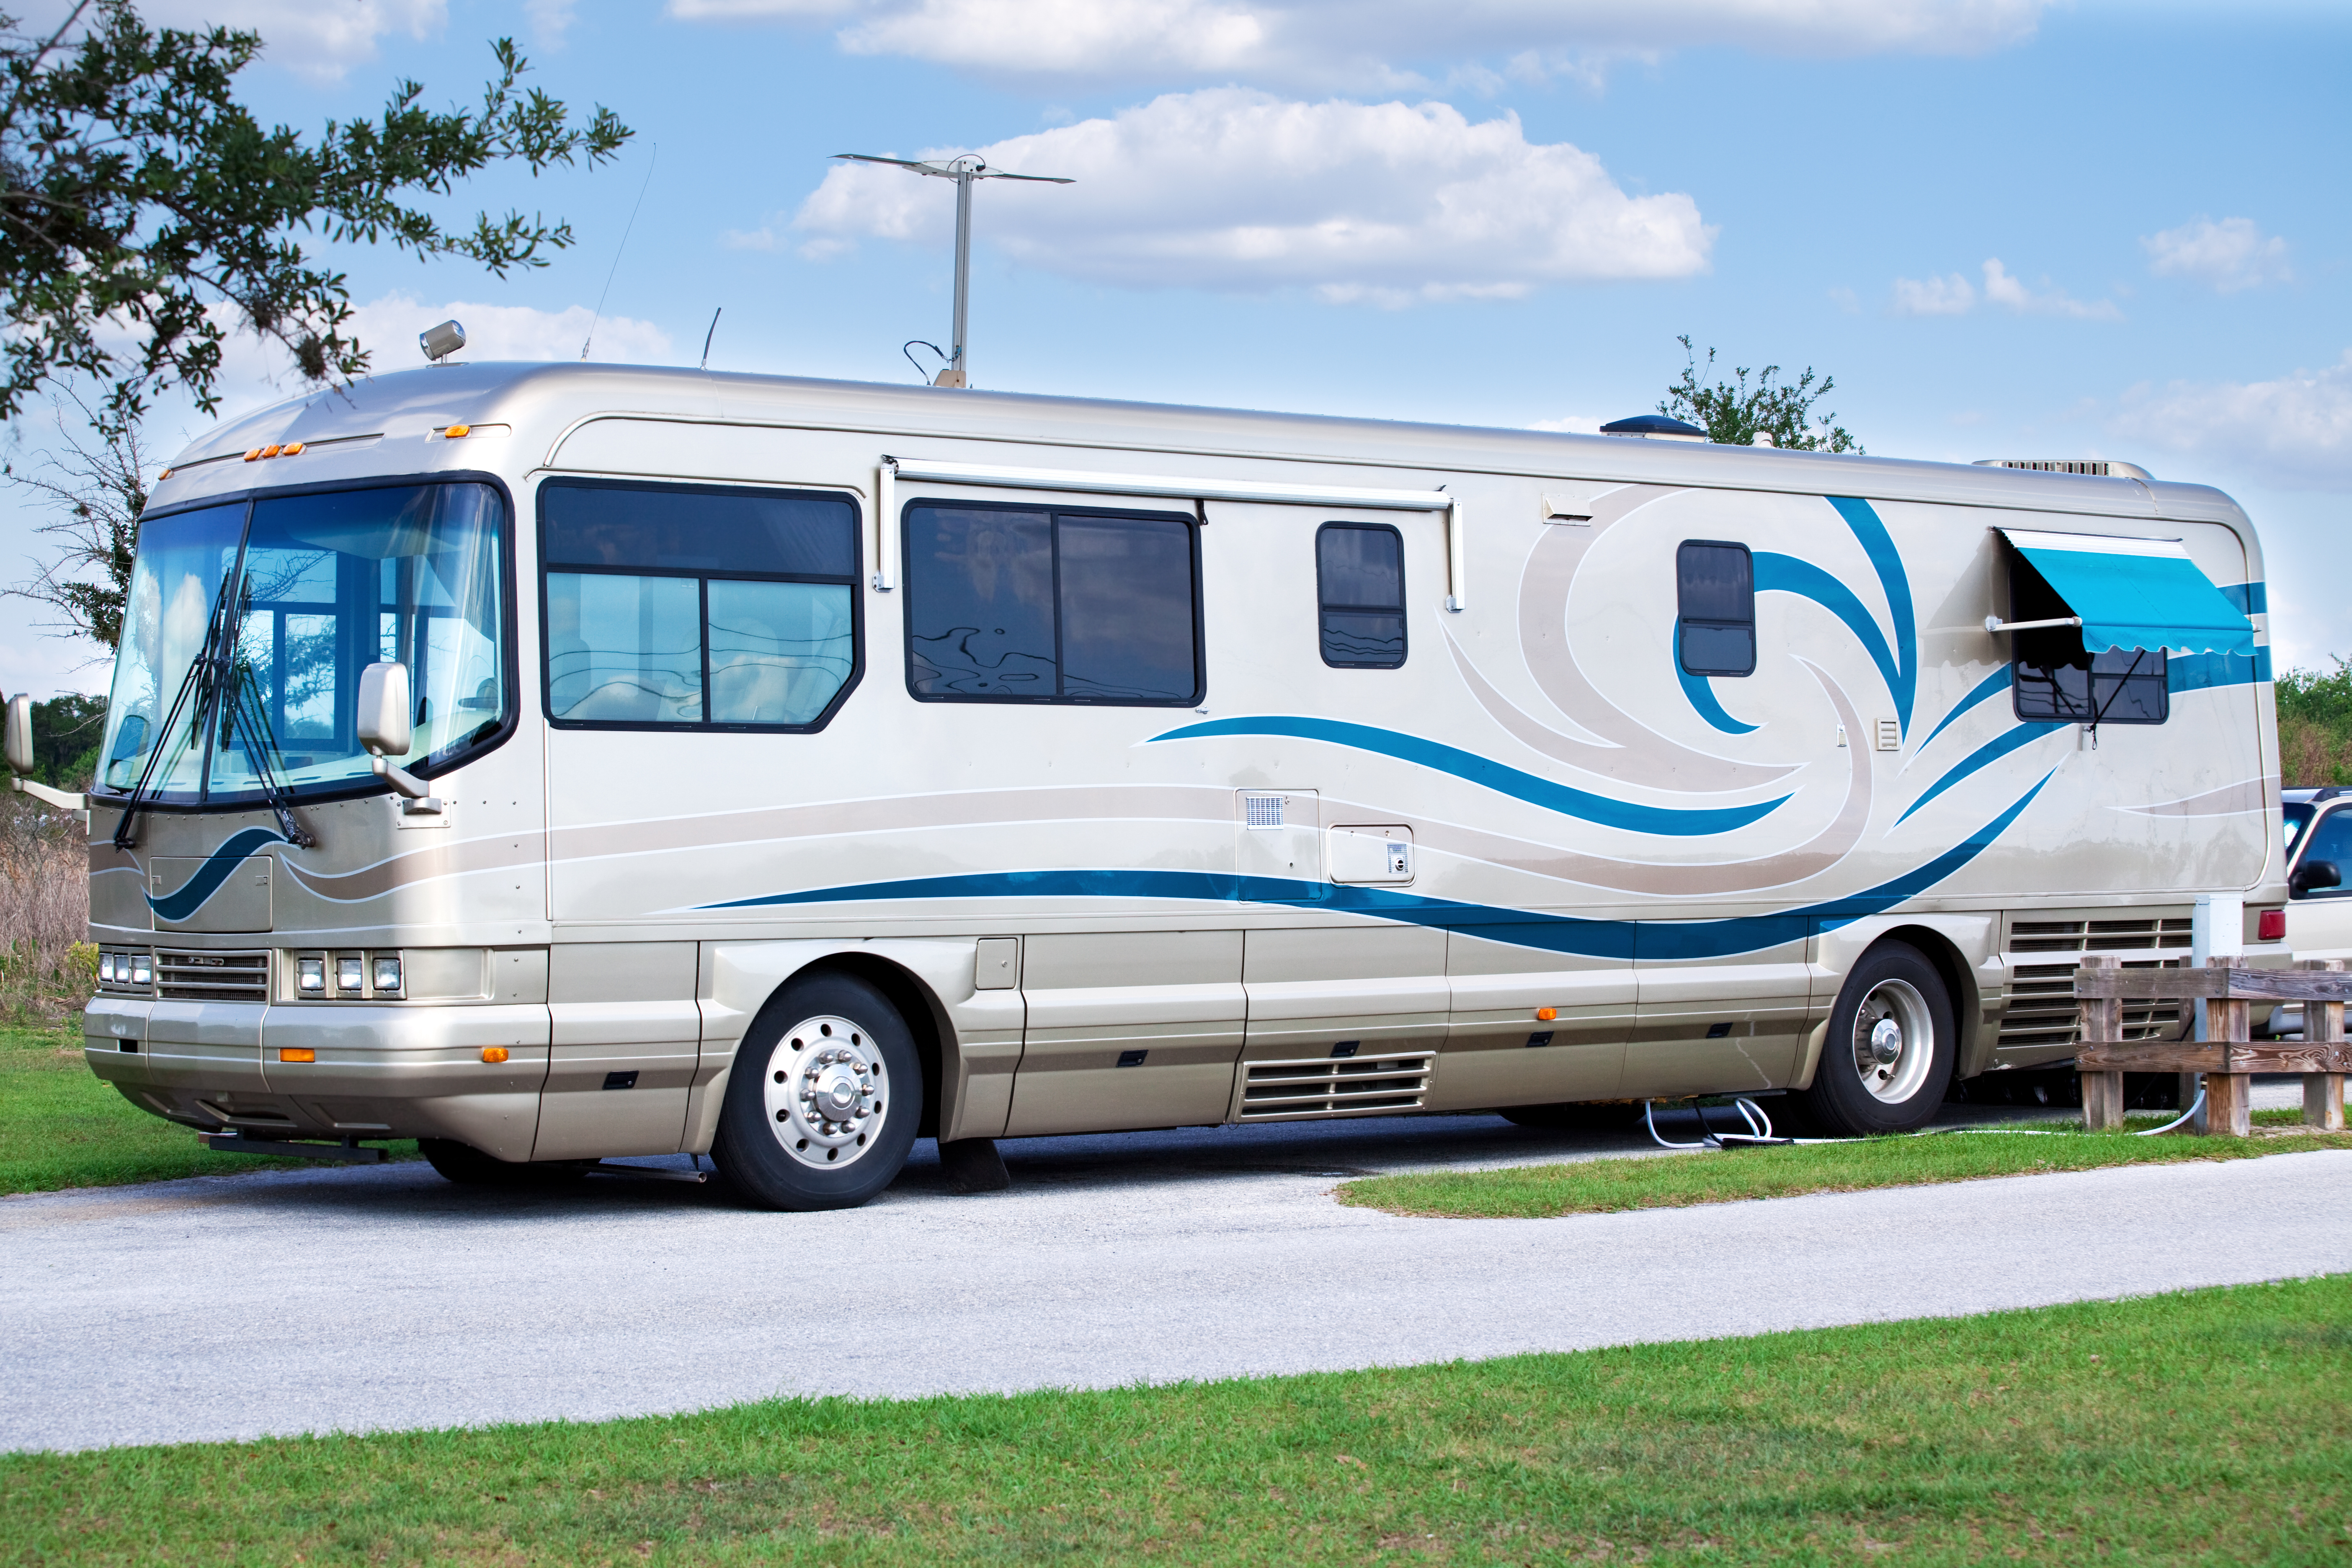 Extended-stay RV parking